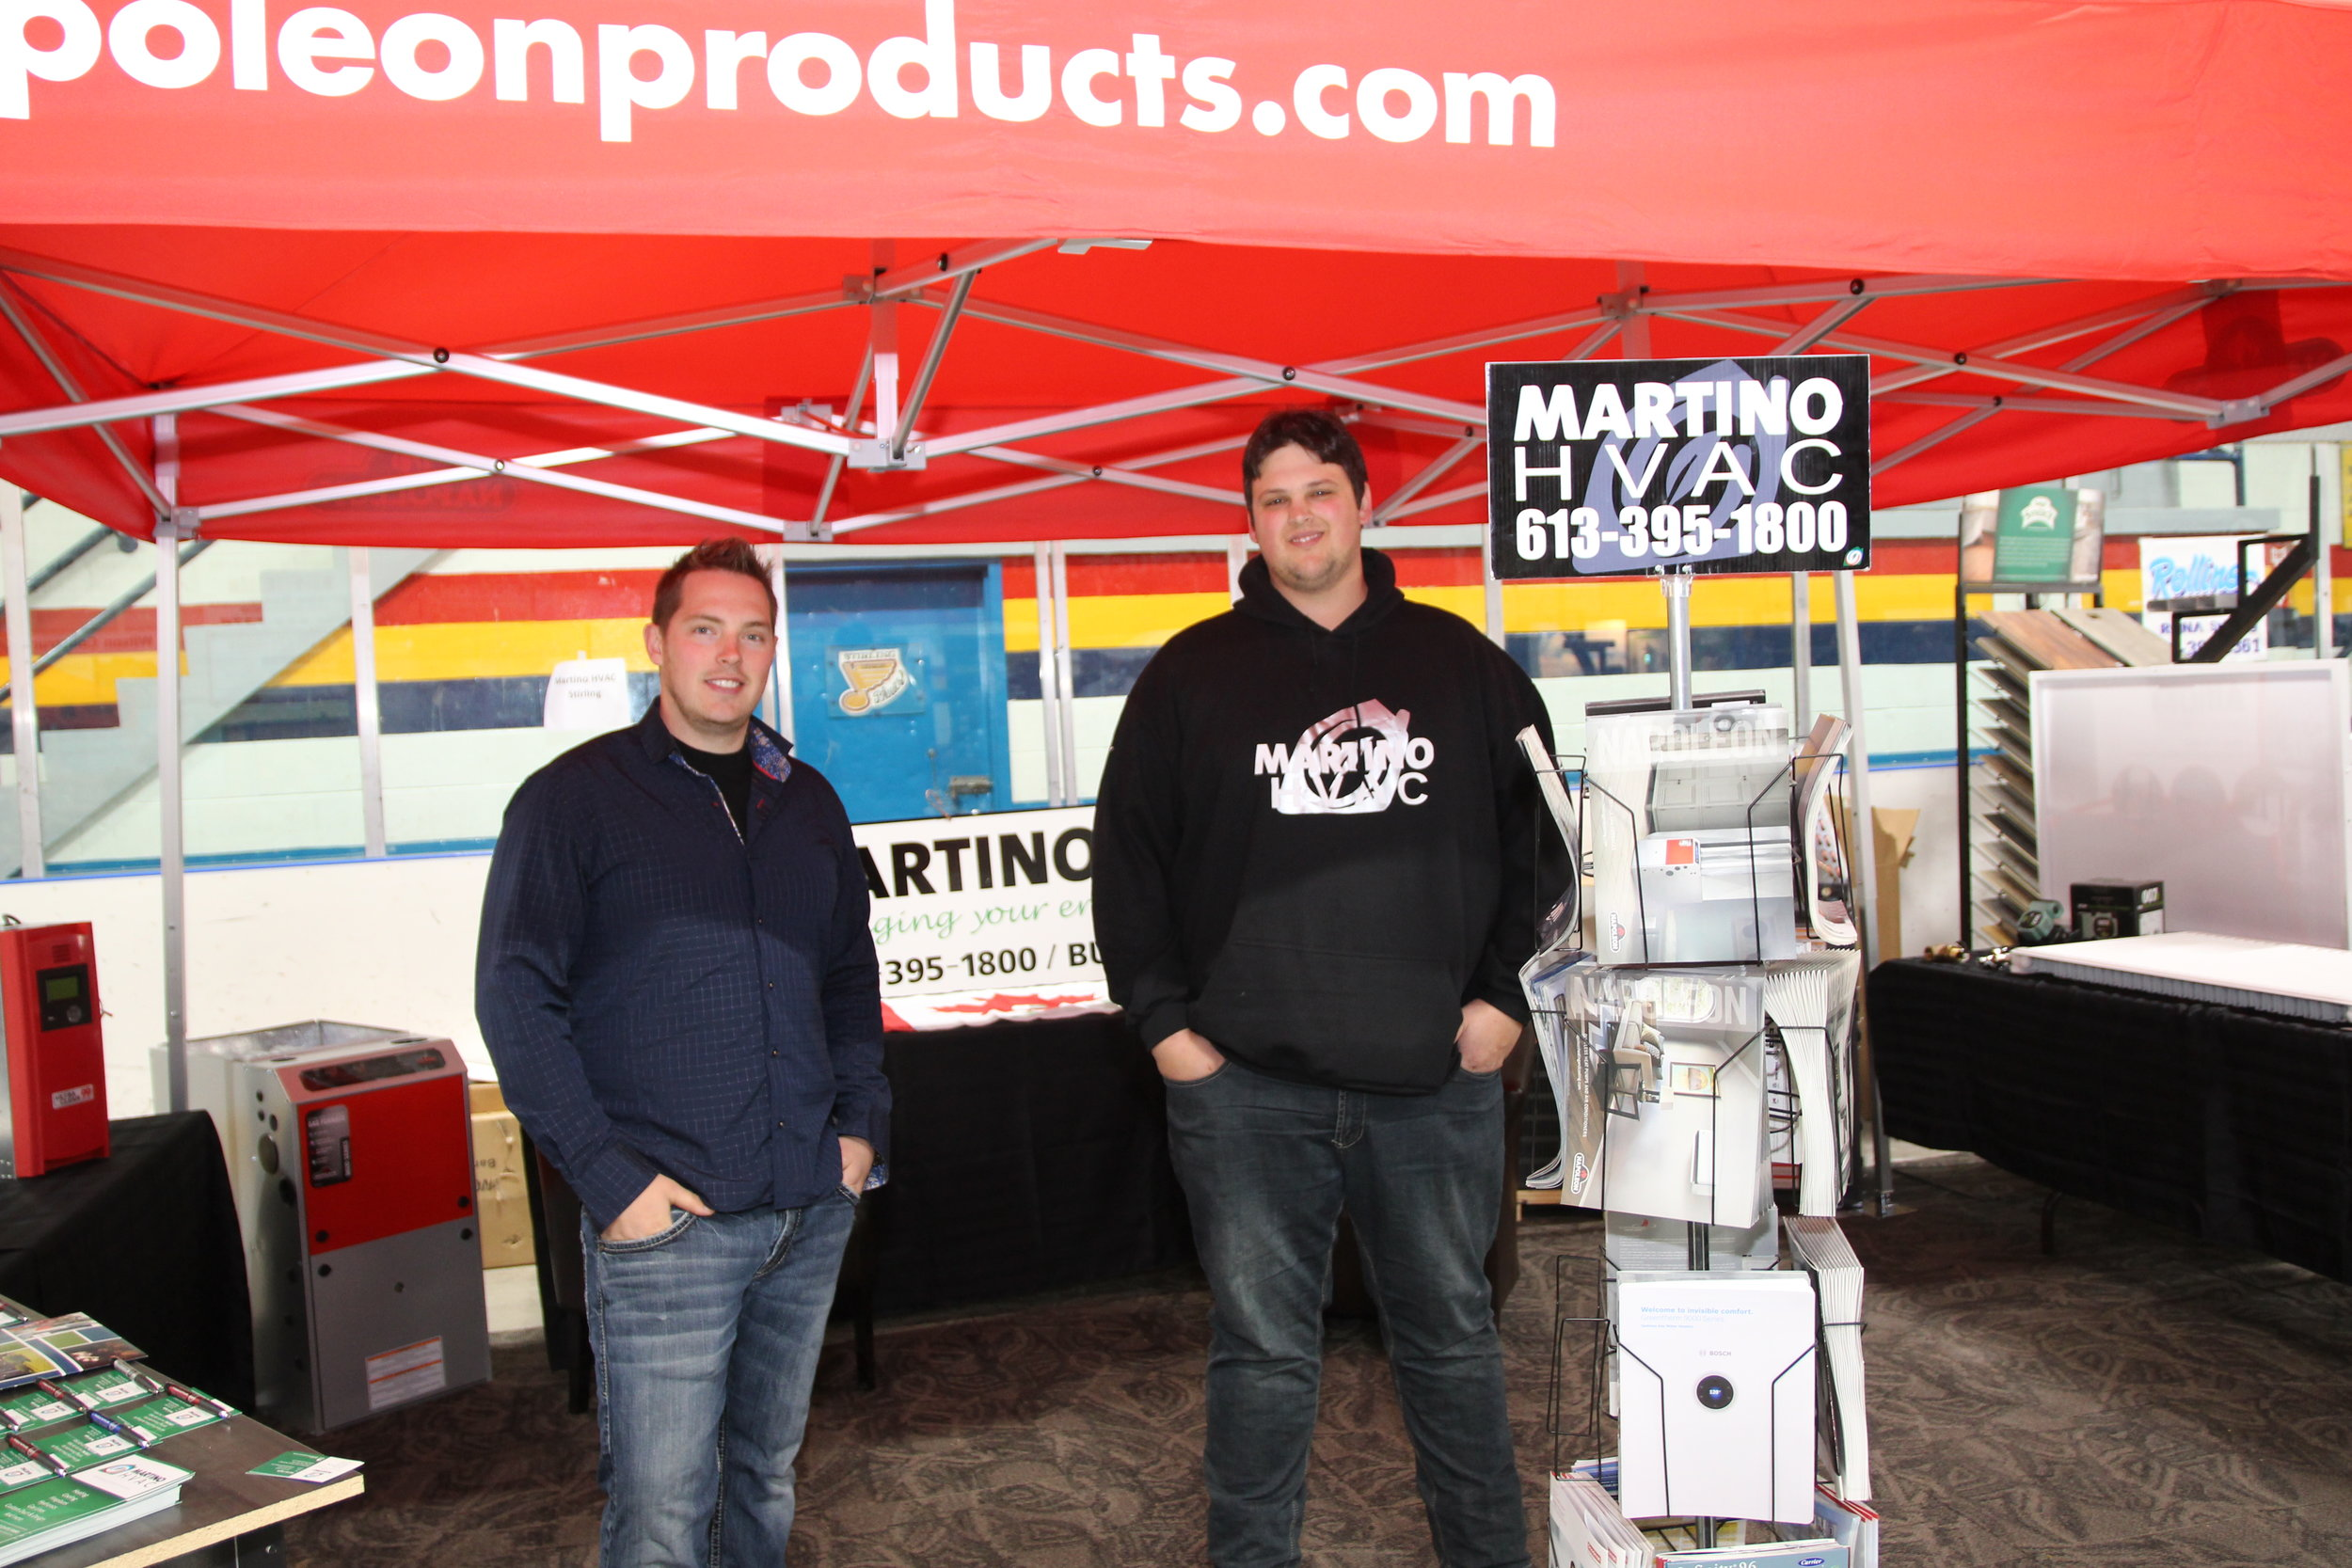 Martin and Don from Martino hvac ltd will also be in attendance at the 4th annual stirling-rawDon home and lifestyle expo!